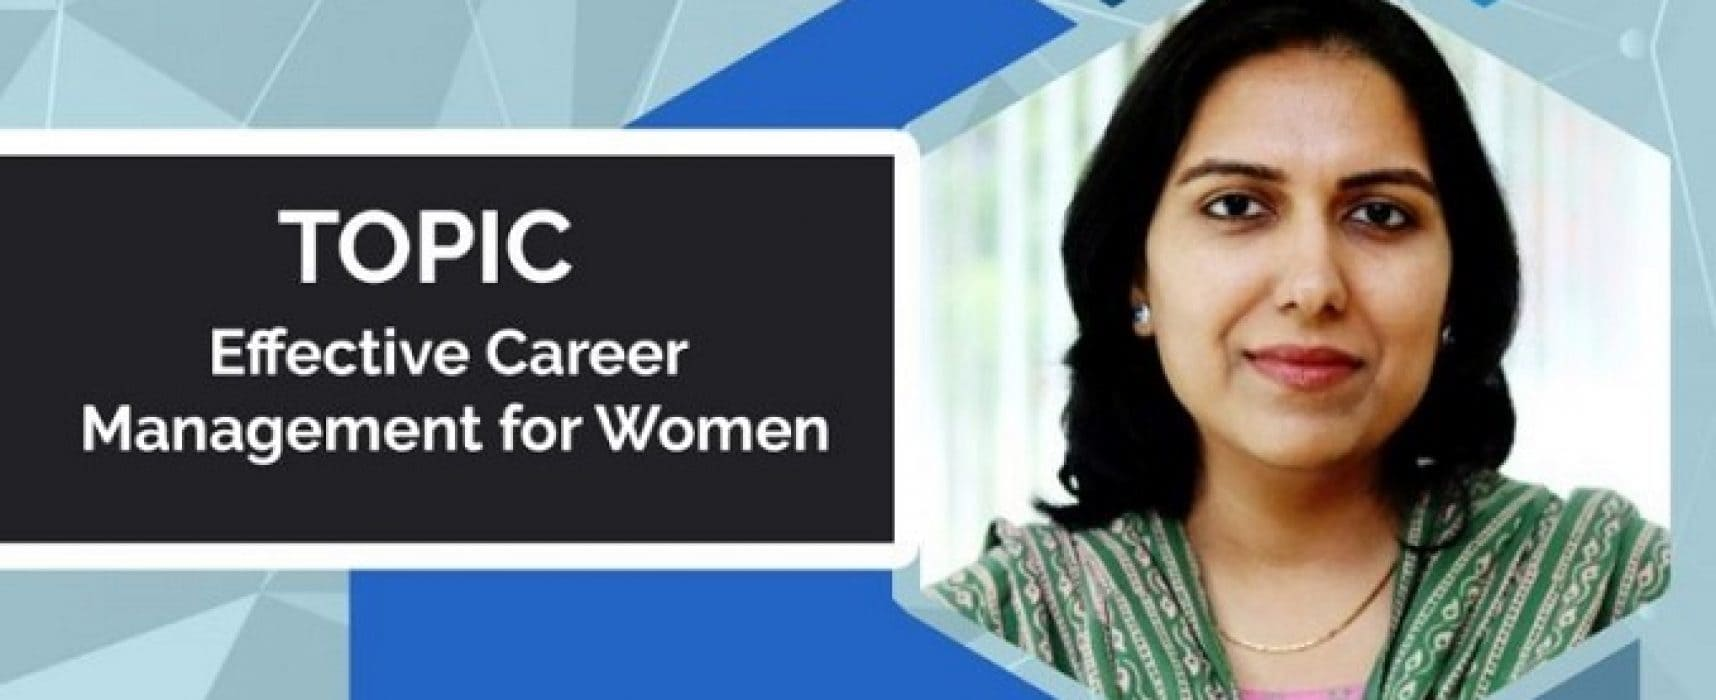 Effective Career Management for Women